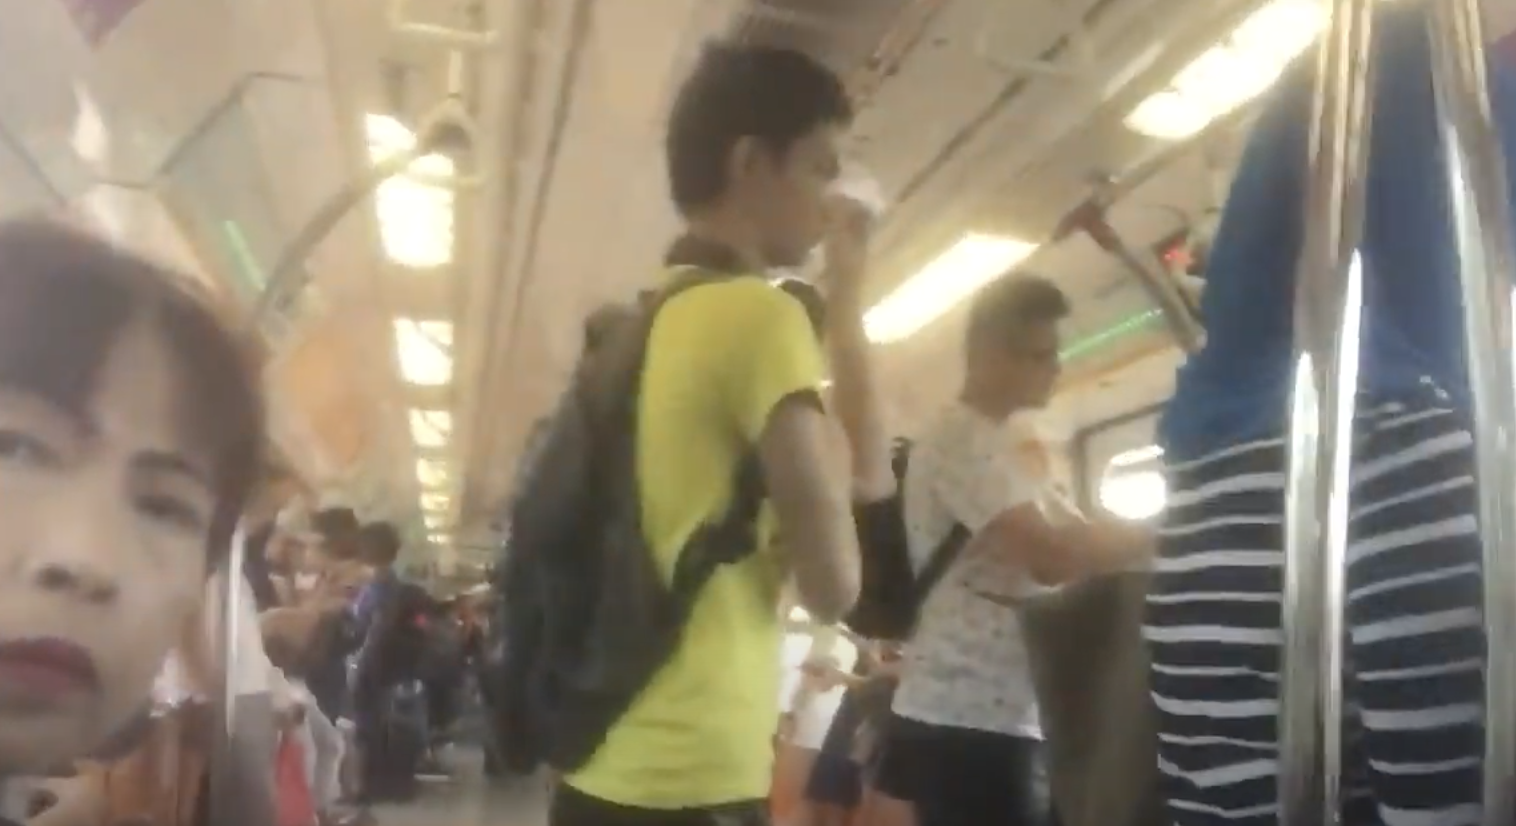 Singapore woman filmed in alleged racist rants charged in court